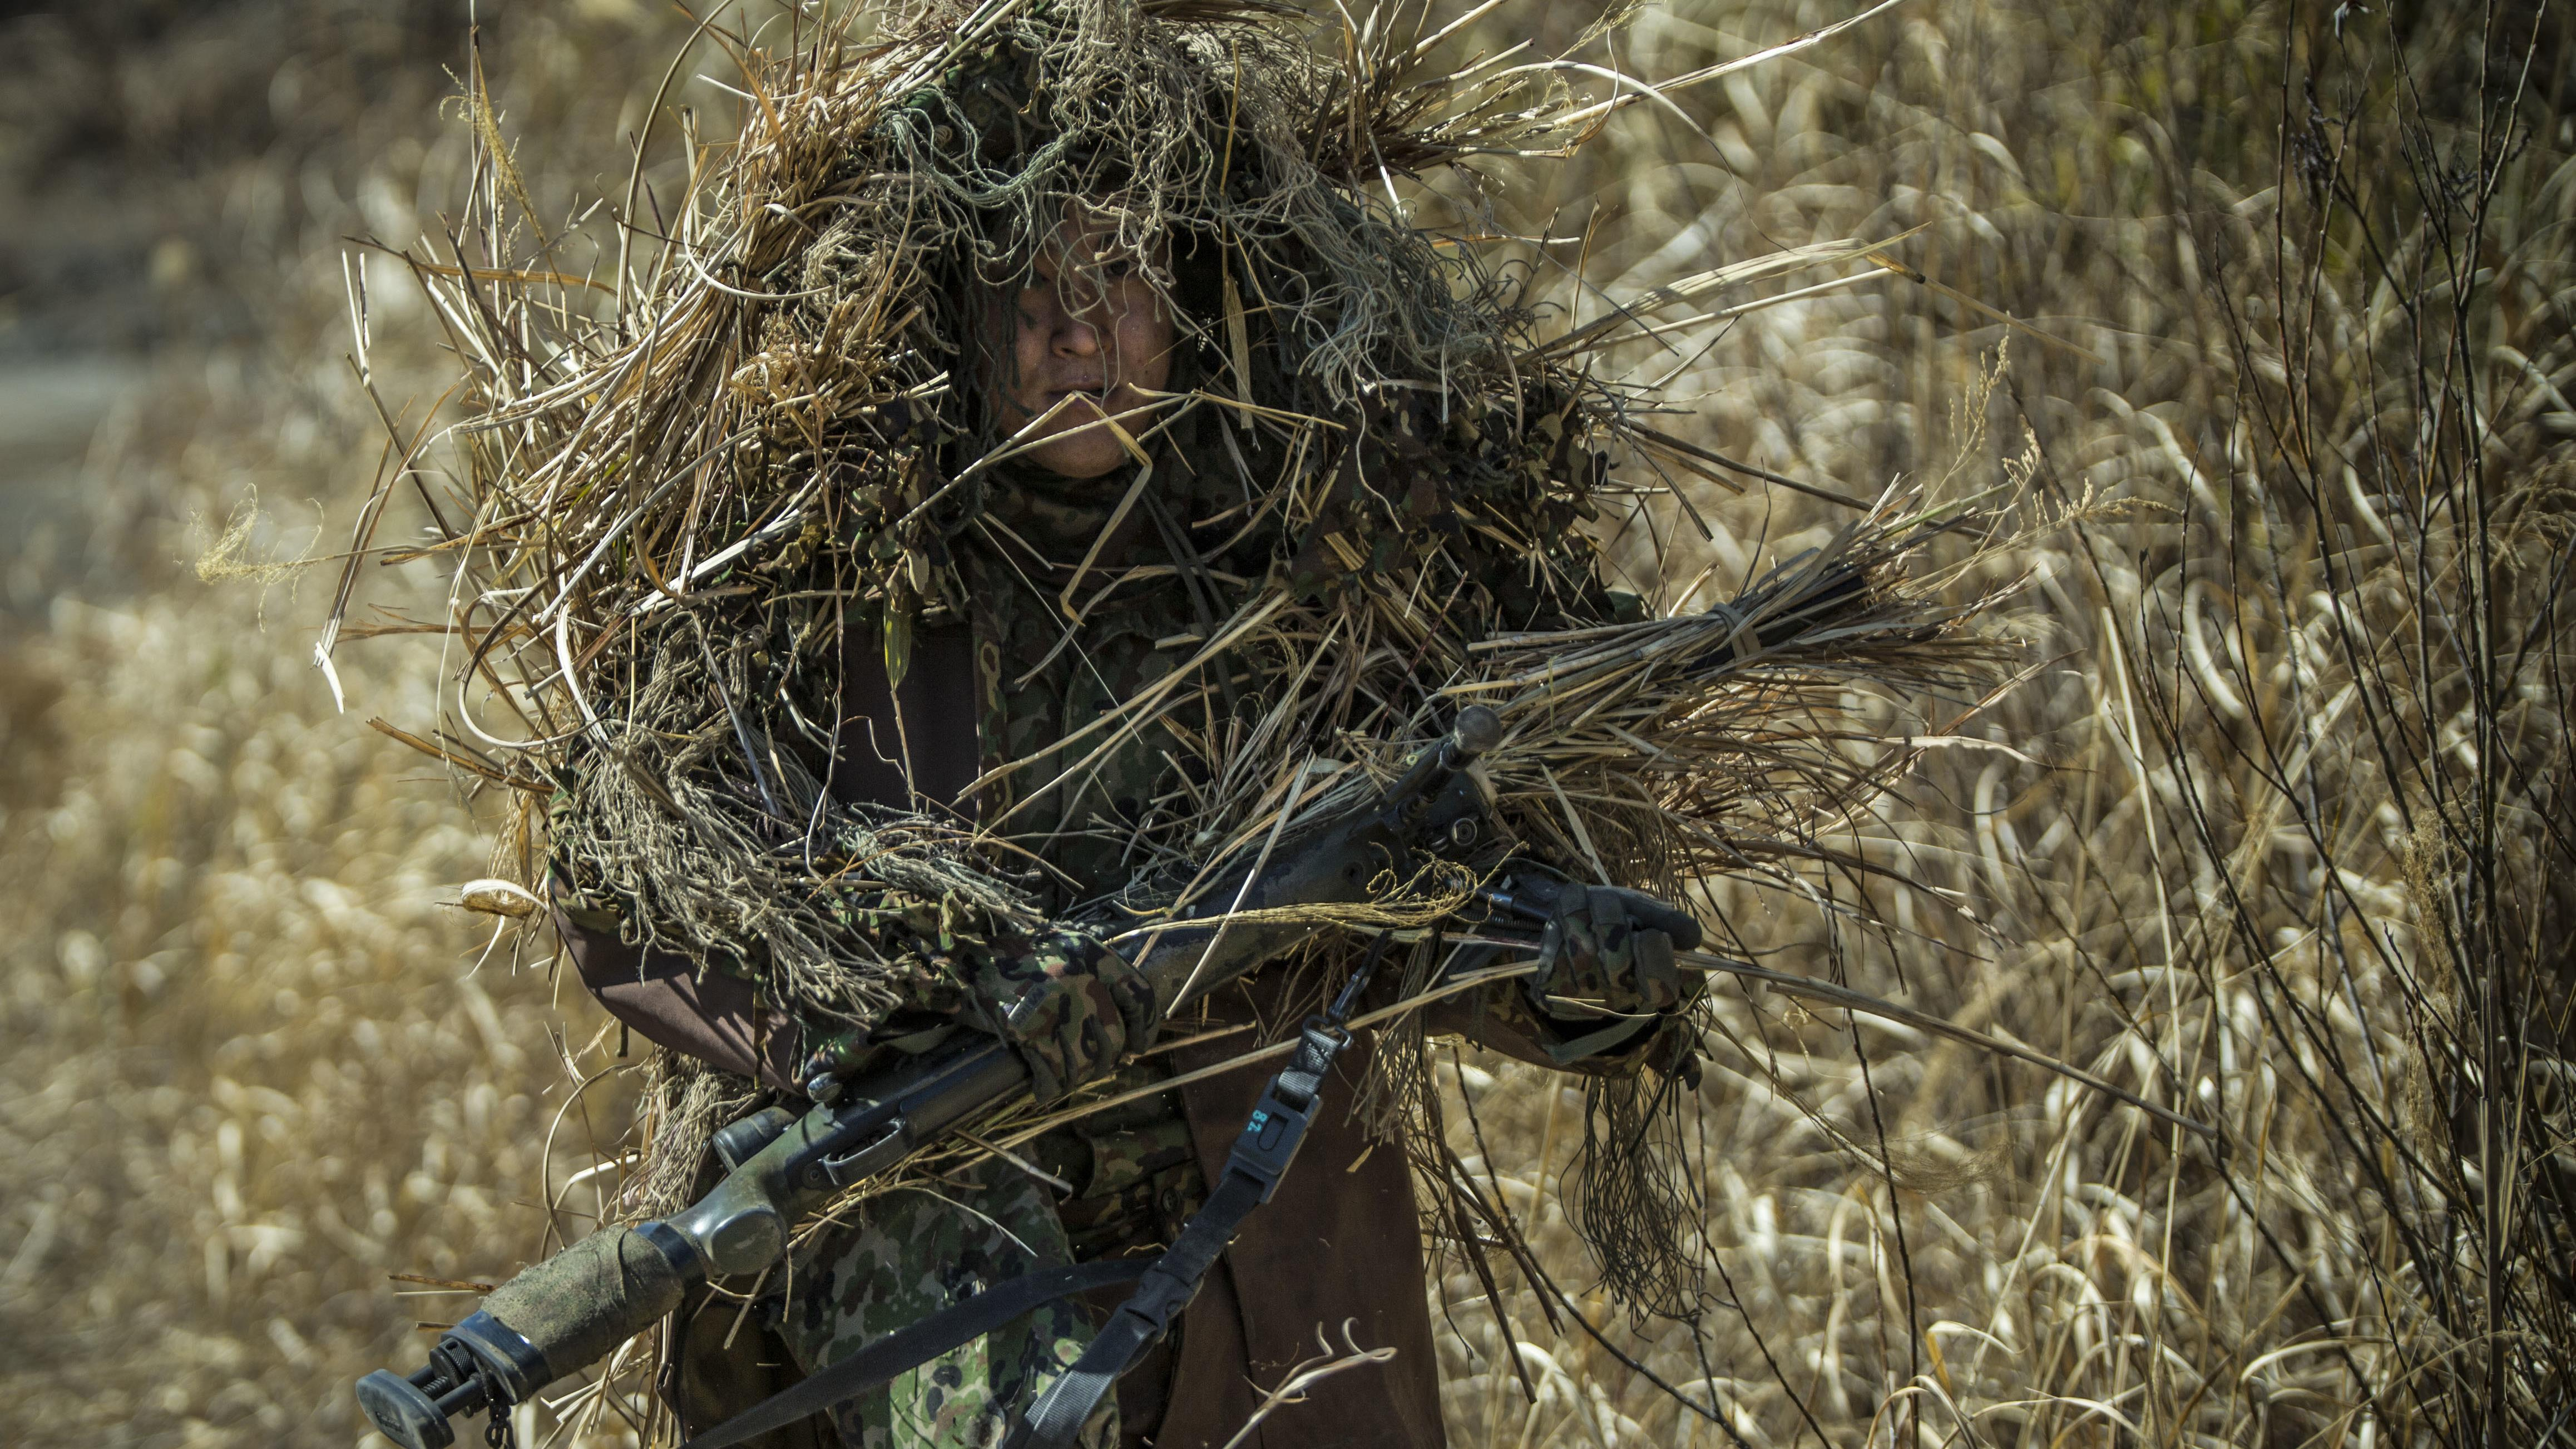 72 Ghillie Suit Wallpapers On Wallpaperplay: Marines.mil